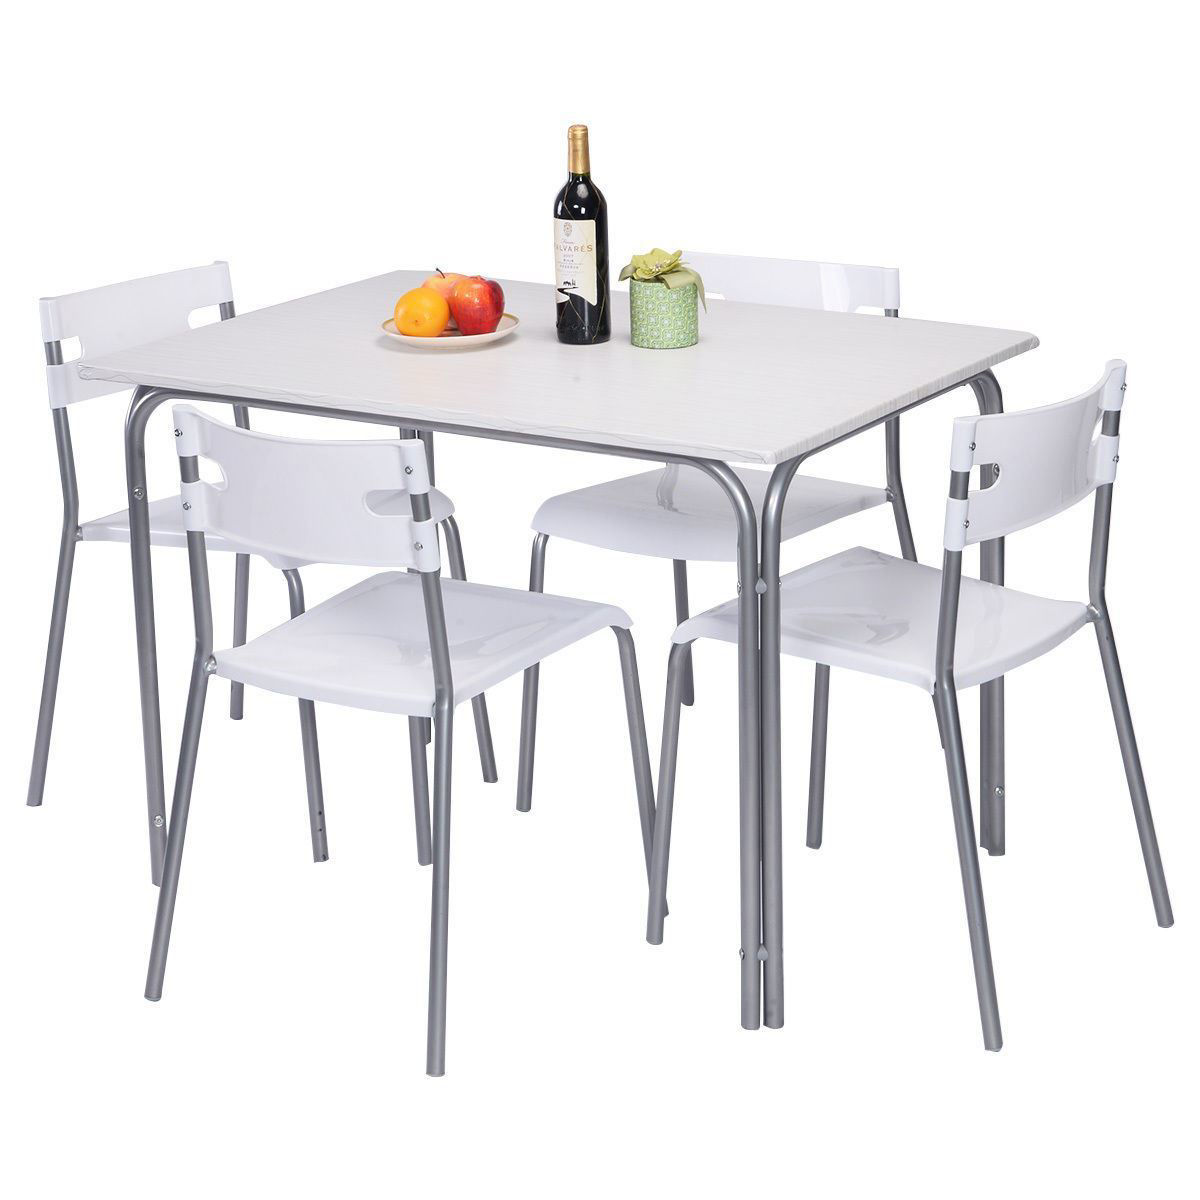 Picture of Kitchen Dining Table and Chairs Home Furniture 5 Pieces